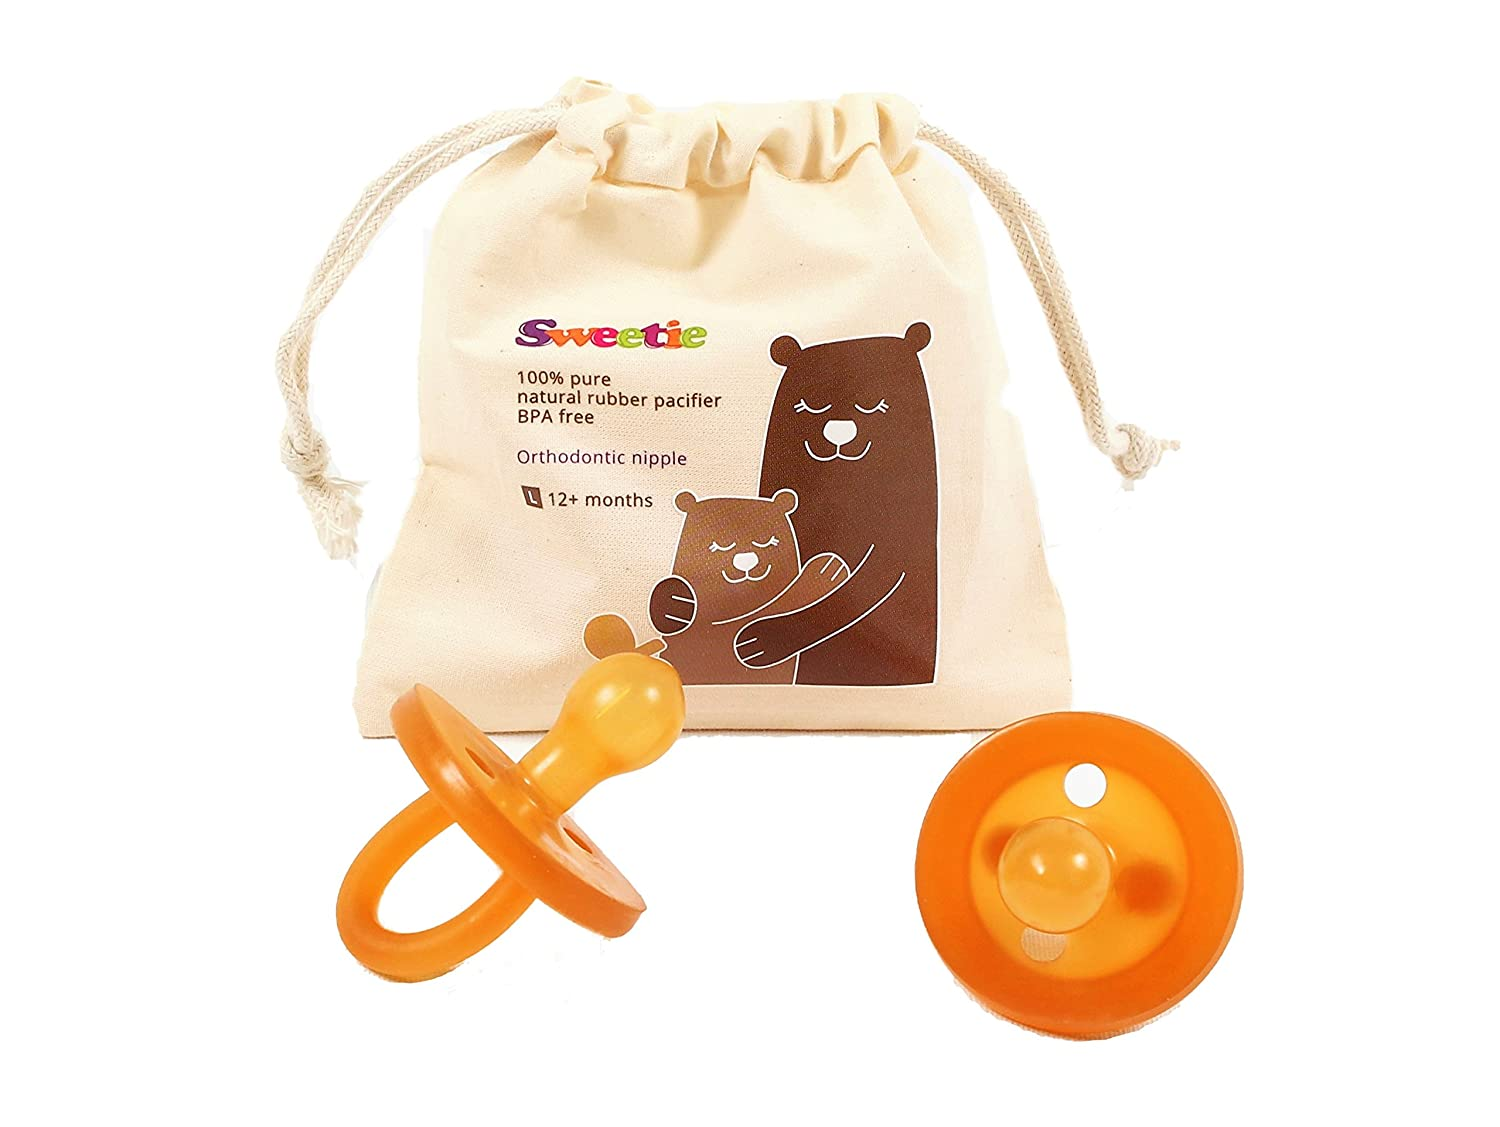 SWEETIE RUBBER Pacifier Natural Rubber Pacifier Rounded 1 Count 6-12 Months Original Natural Rubber Pacifier Malaysia